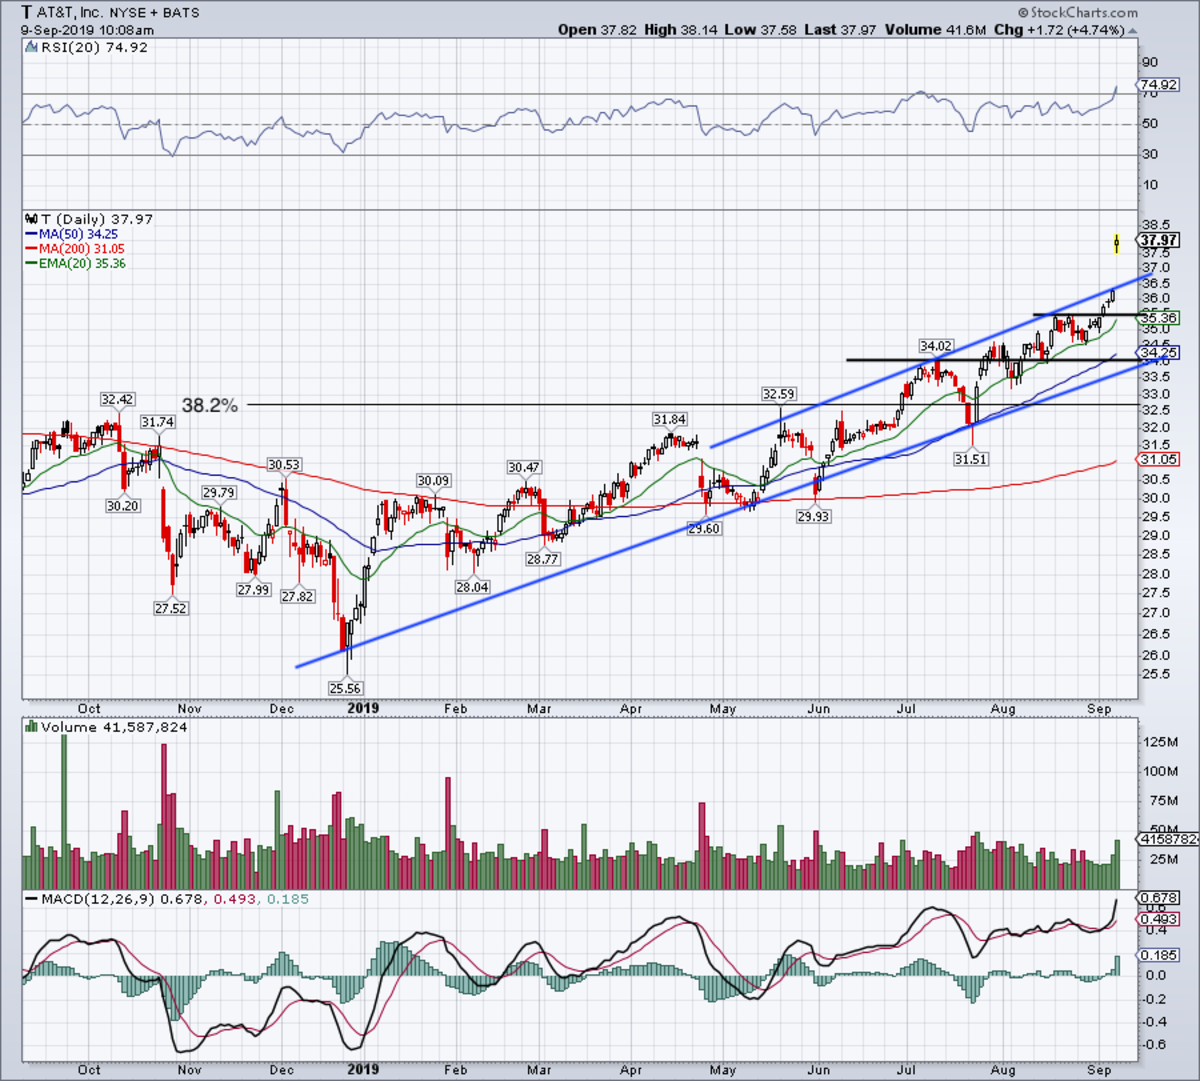 Daily chart of AT&T stock.